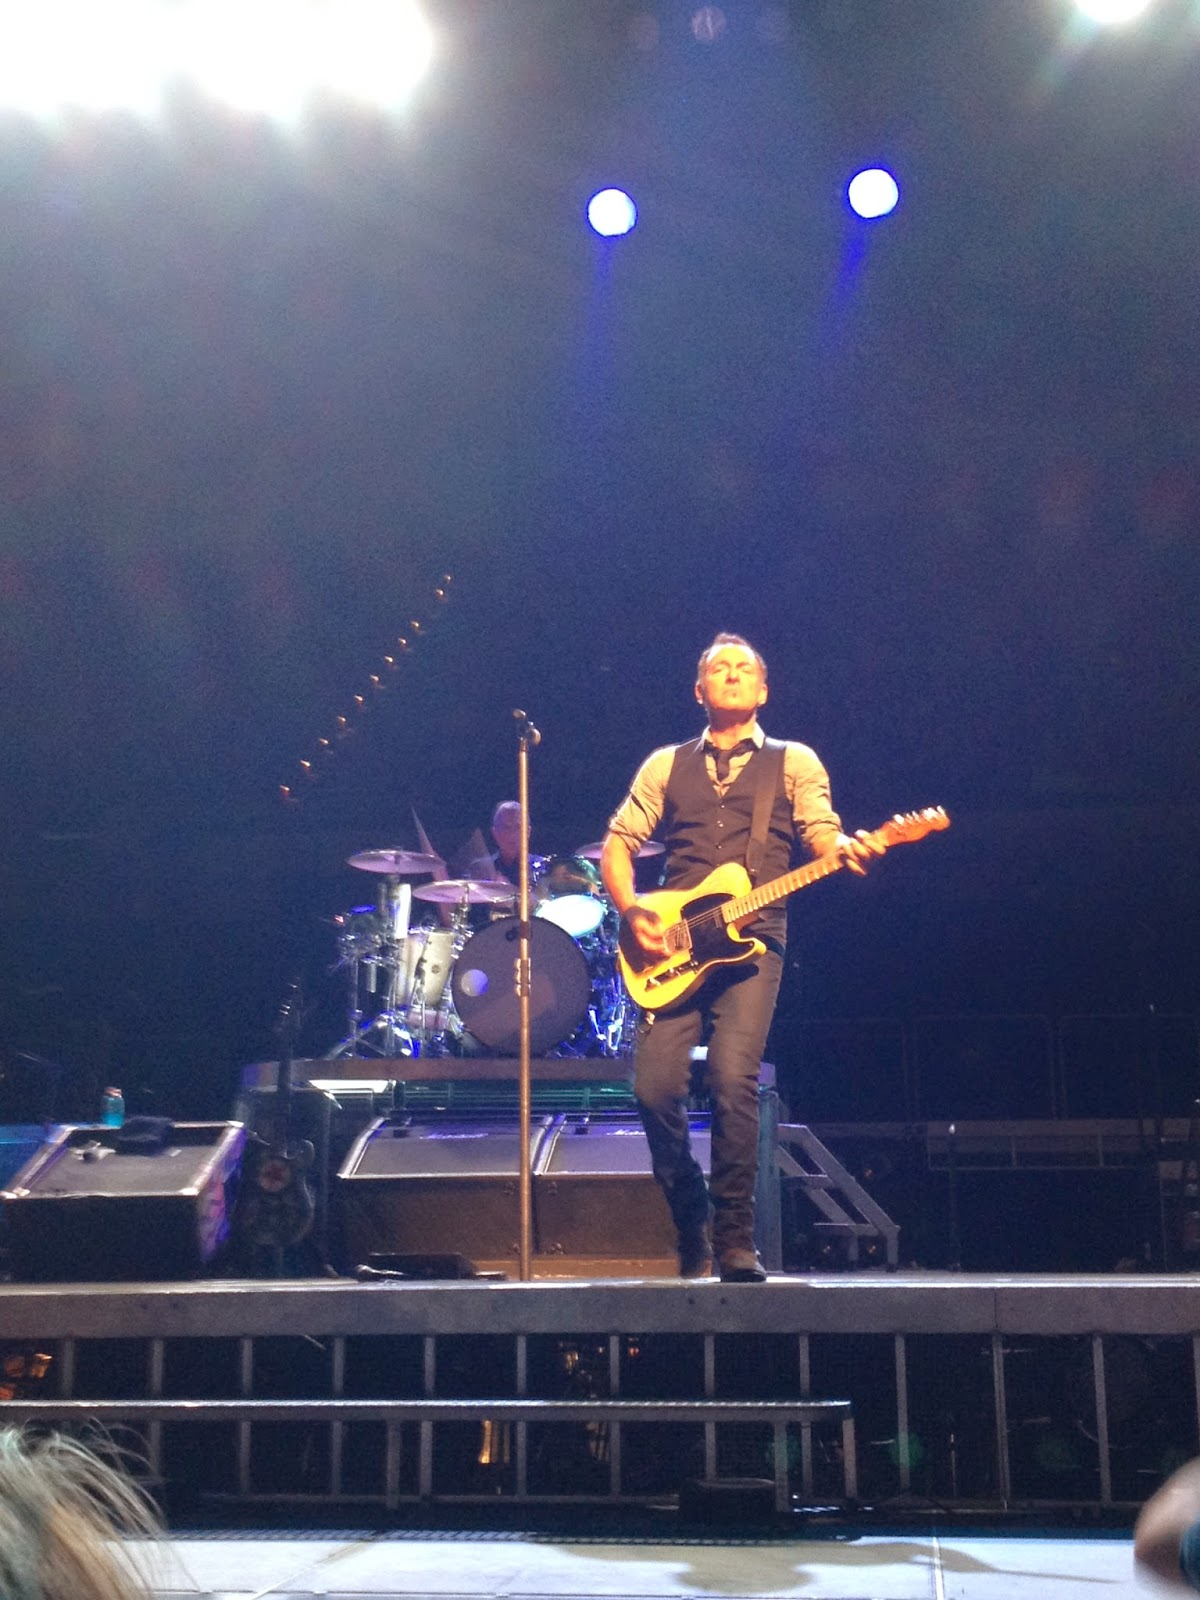 Seconds Steel Adelaide Bruce Tour Will Springsteen Tour Australia In 2015